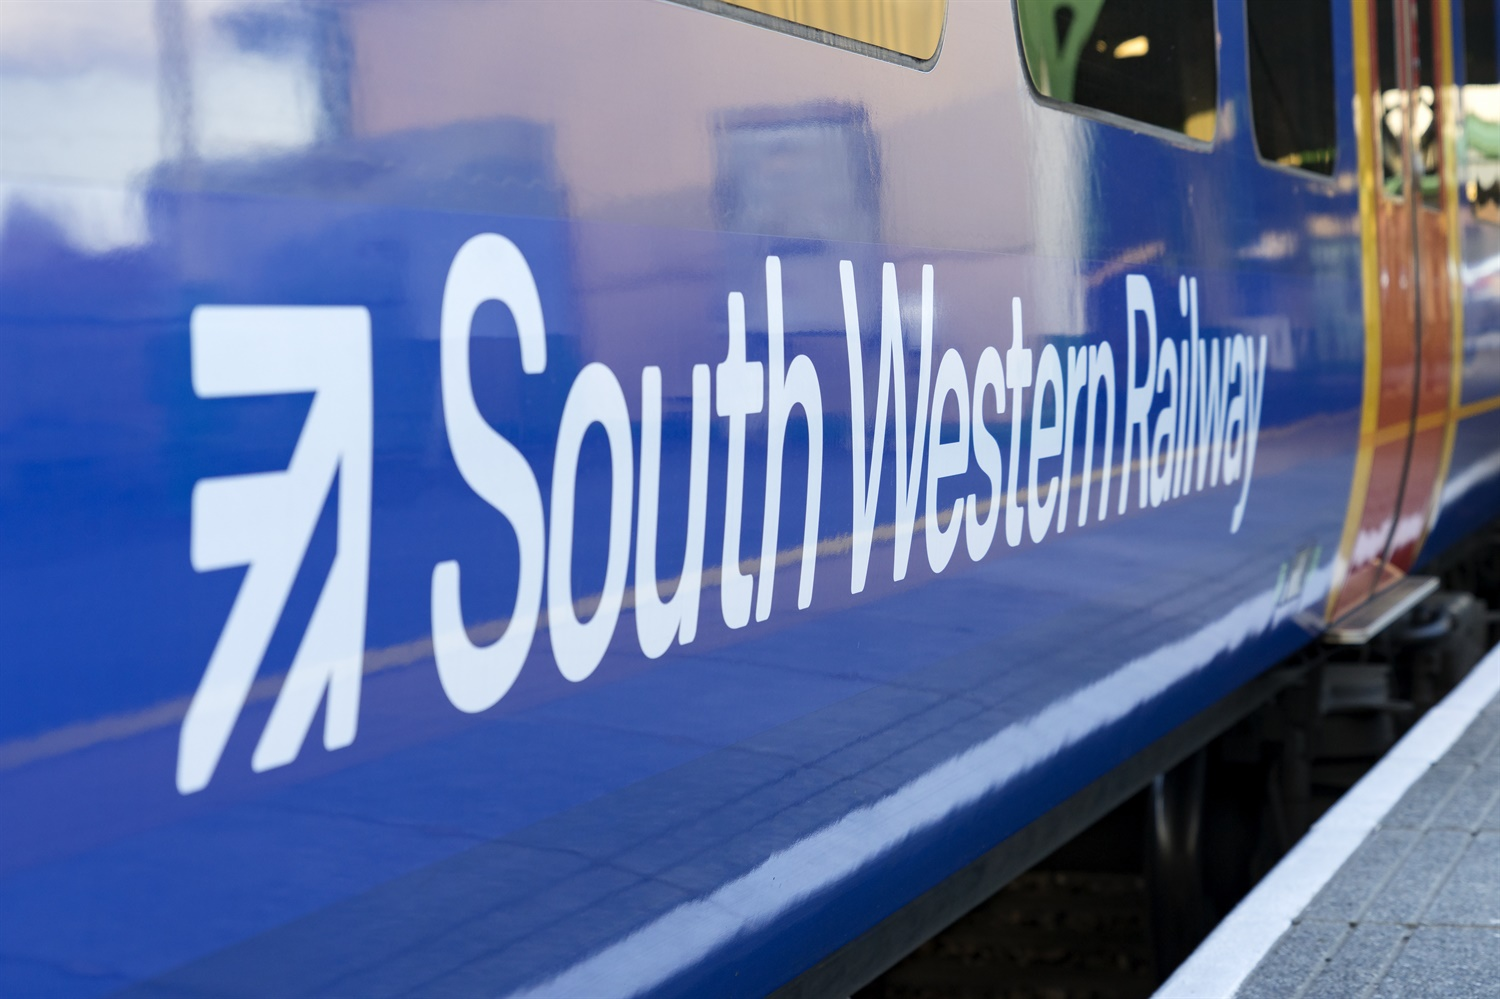 Network Rail accepts role in 'unacceptable SWR disruption' linked to poor recovery plans